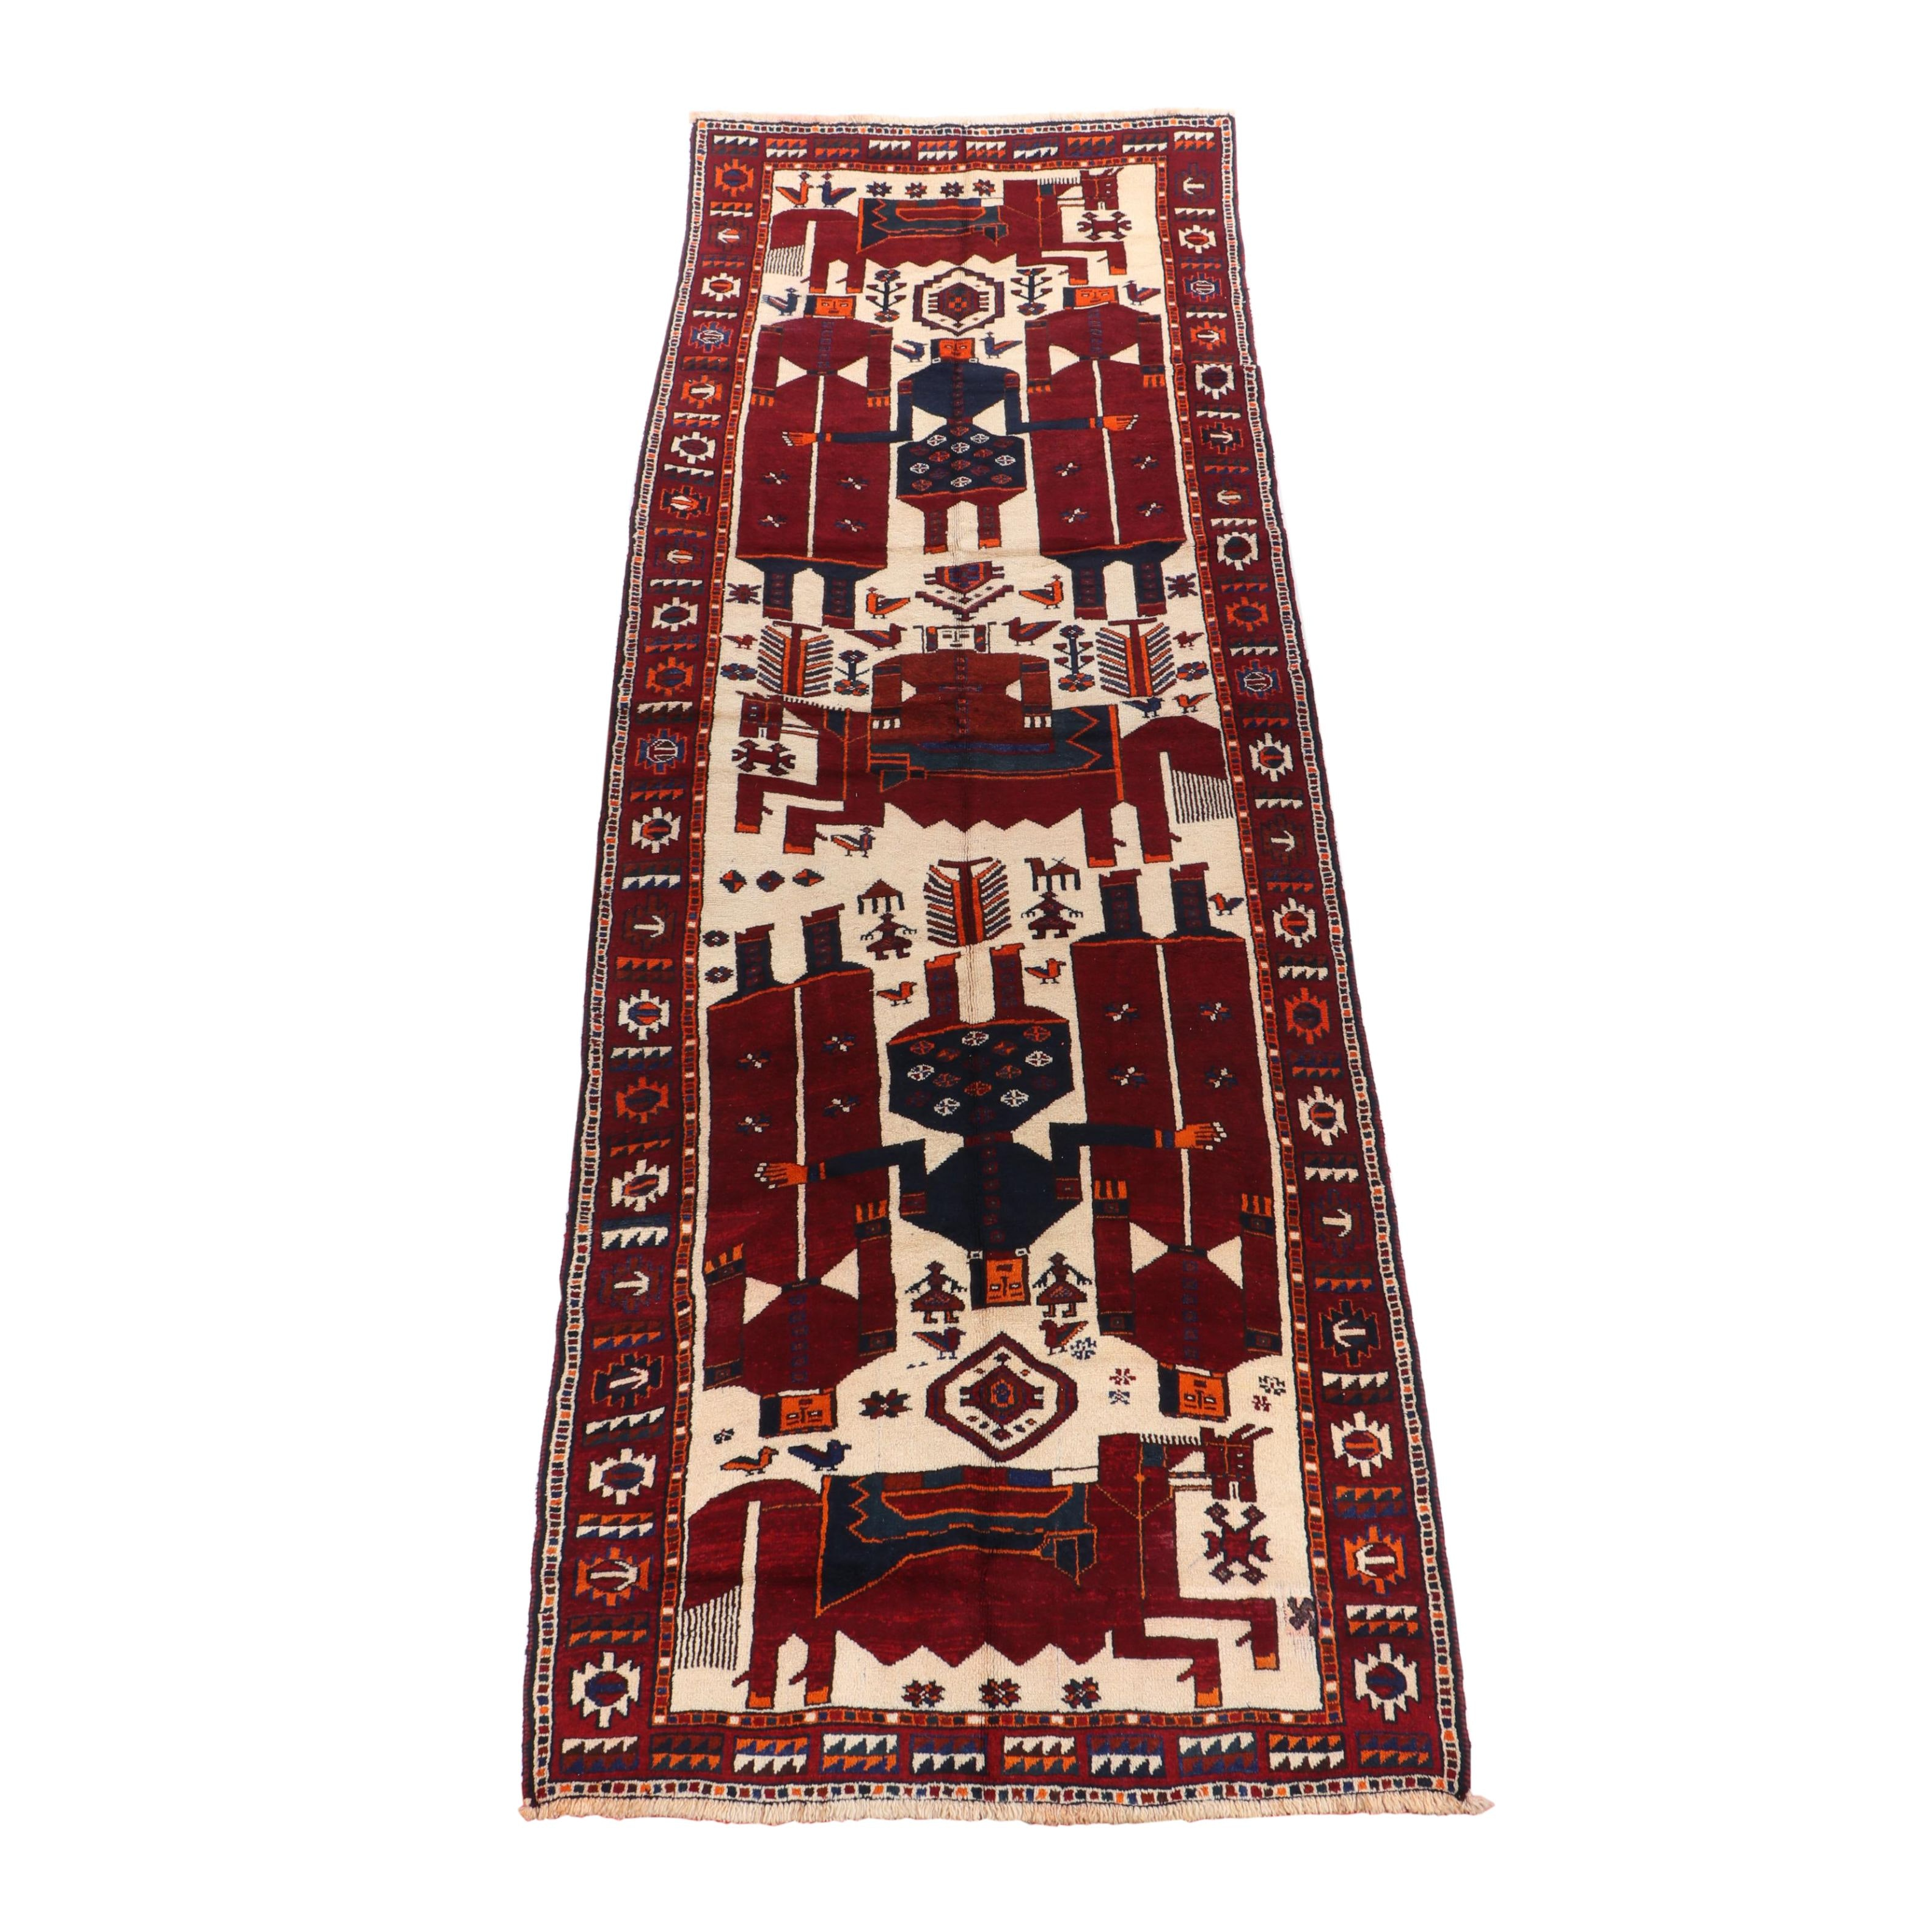 Hand-Knotted Persian Qashqai Gabbeh Pictorial Wool Rug